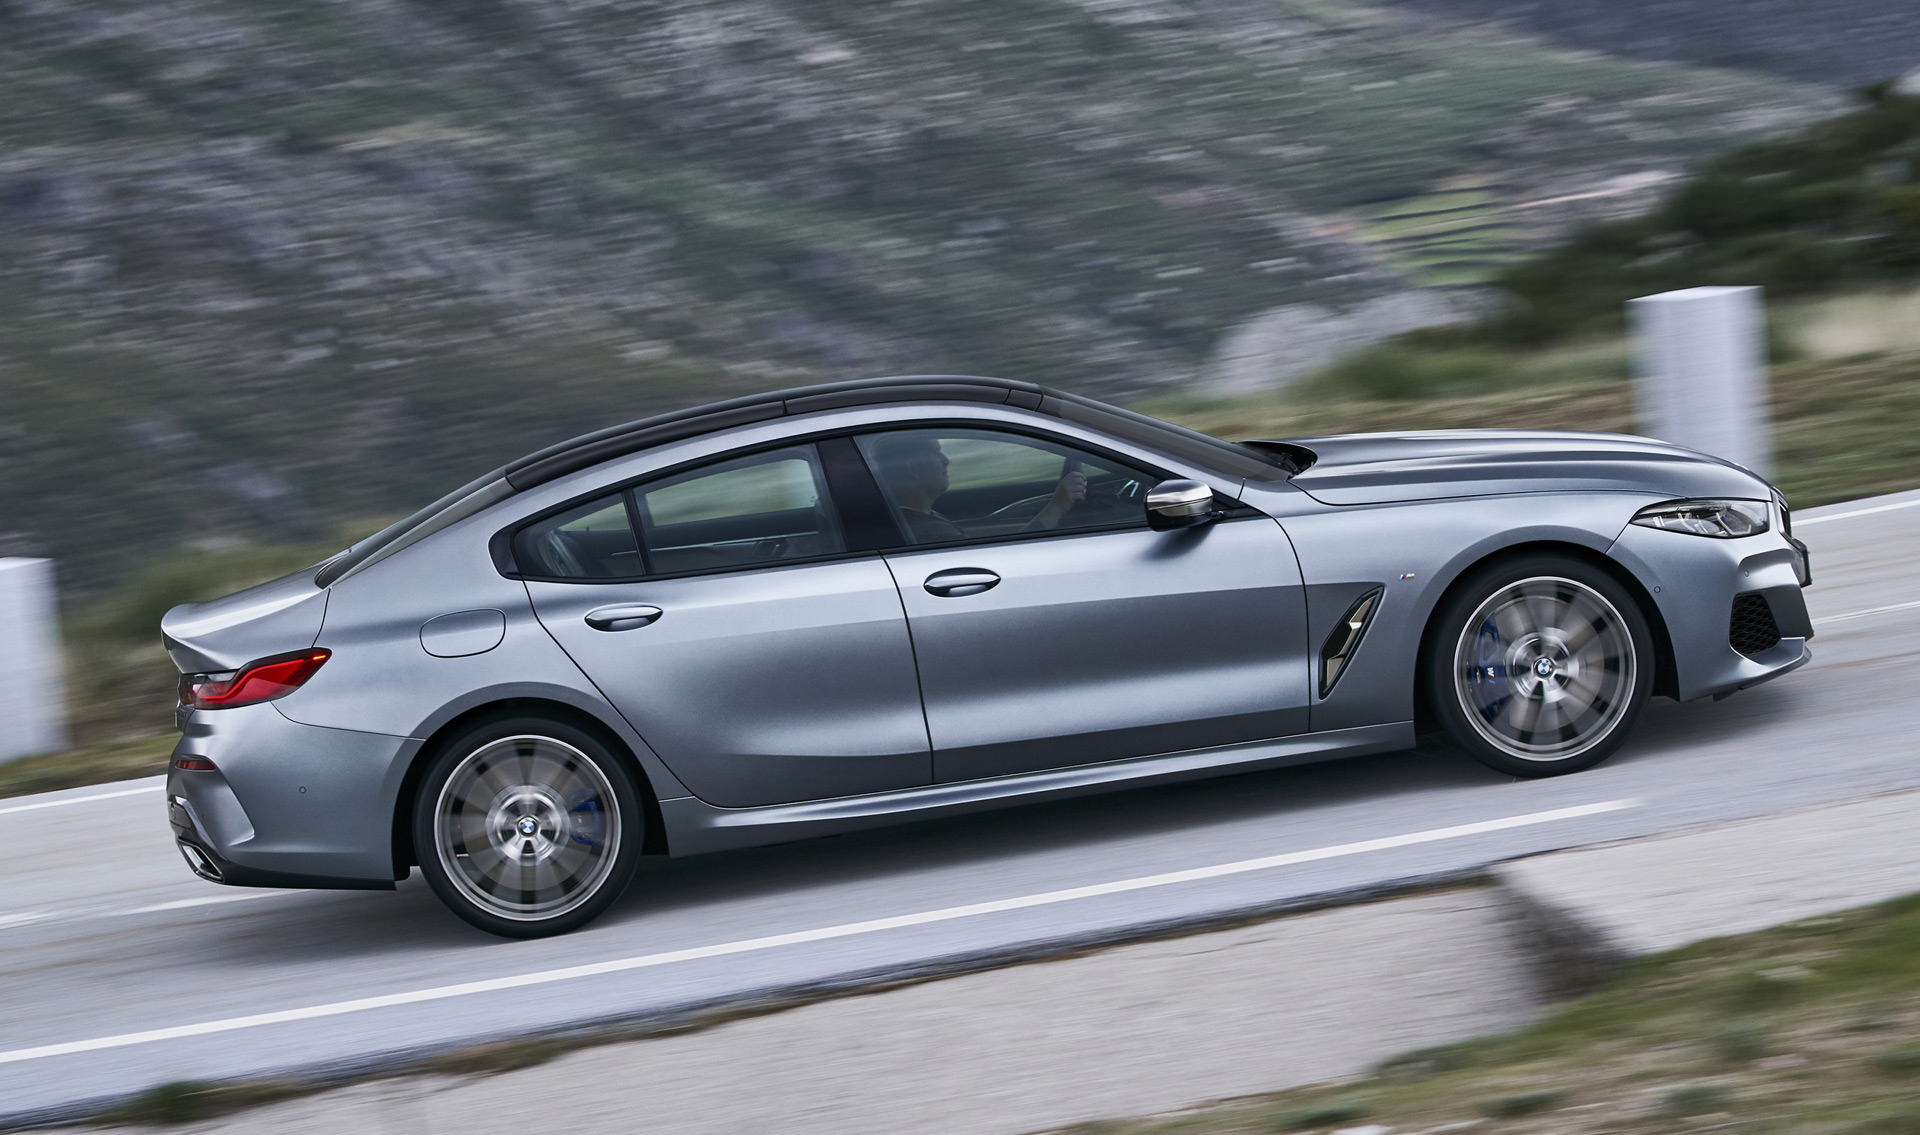 2020 BMW 8-Series Gran Coupe revealed, looks stunning